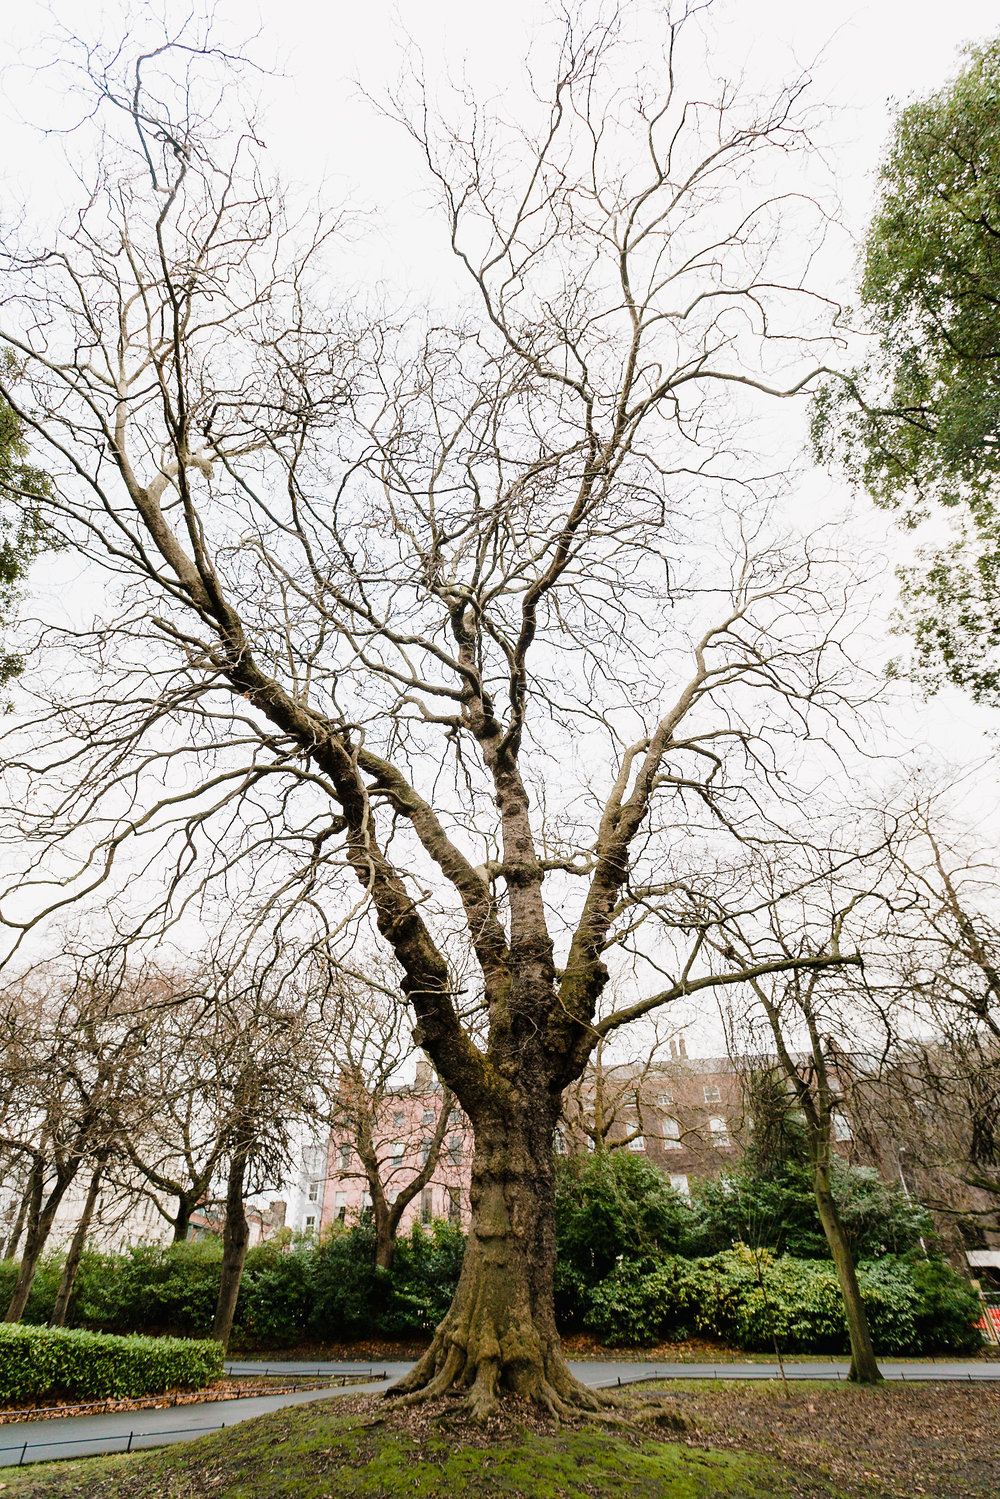 st stephens green tree.jpg